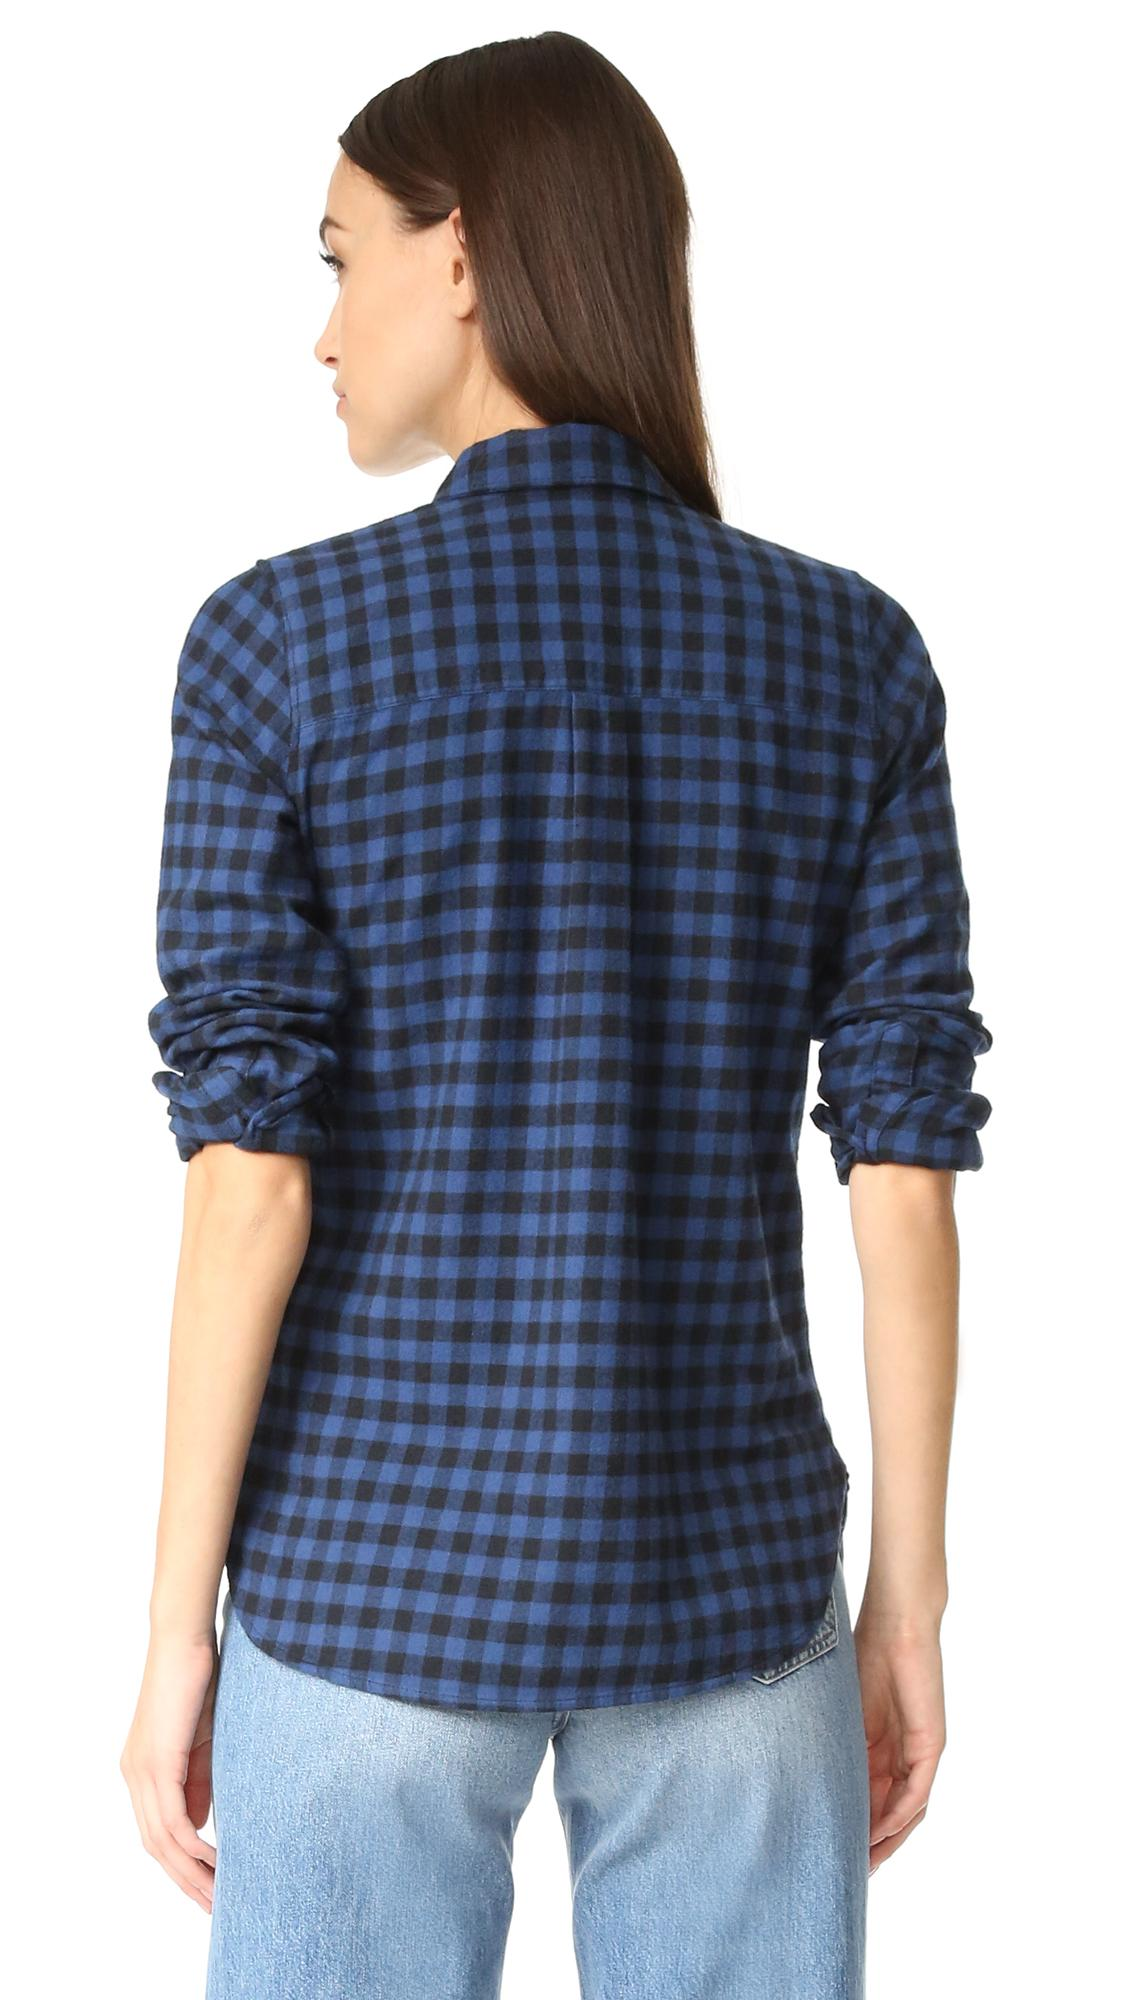 Lyst madewell slim button down shirt in blue for Slim button down shirt